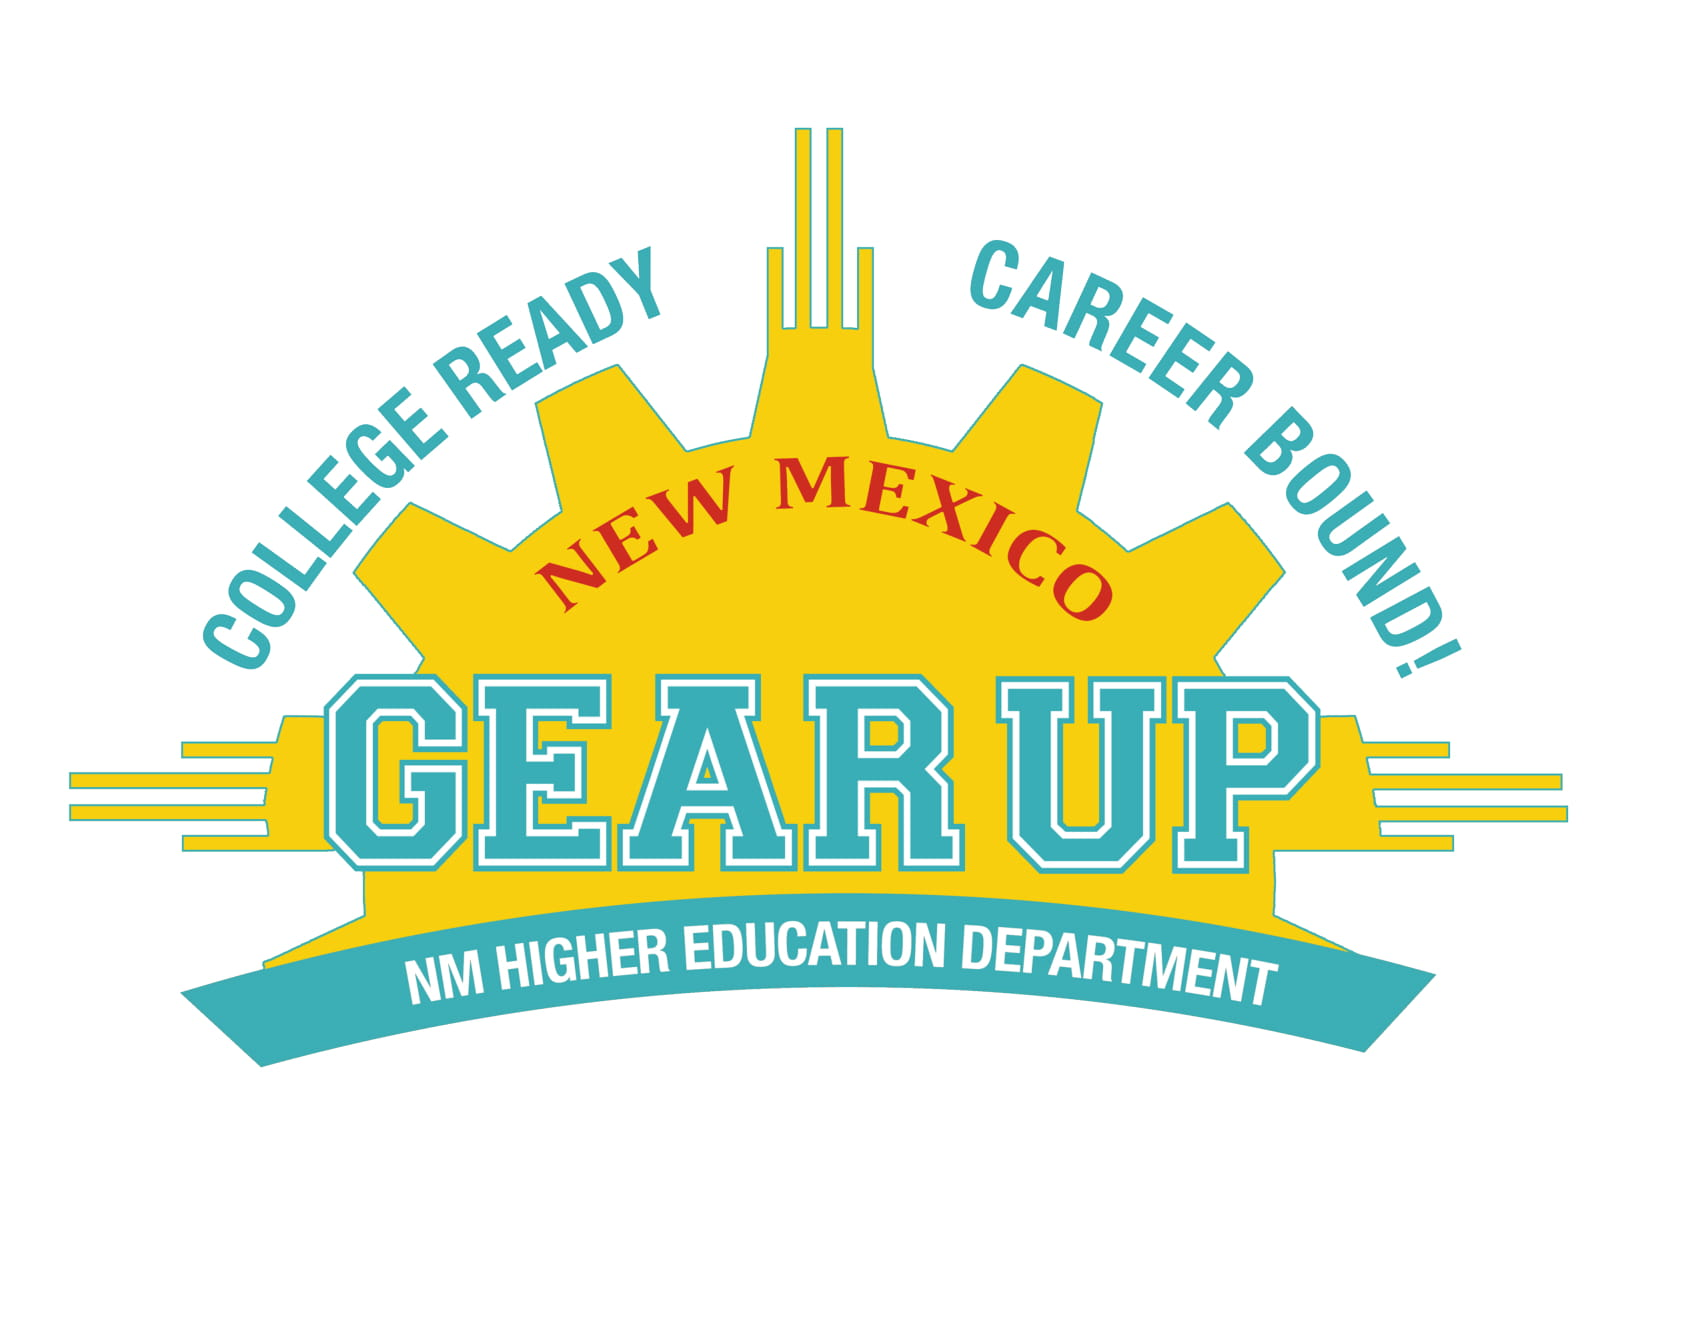 Gear Up New Mexico Nm Higher Education Department Nm Higher Education Department